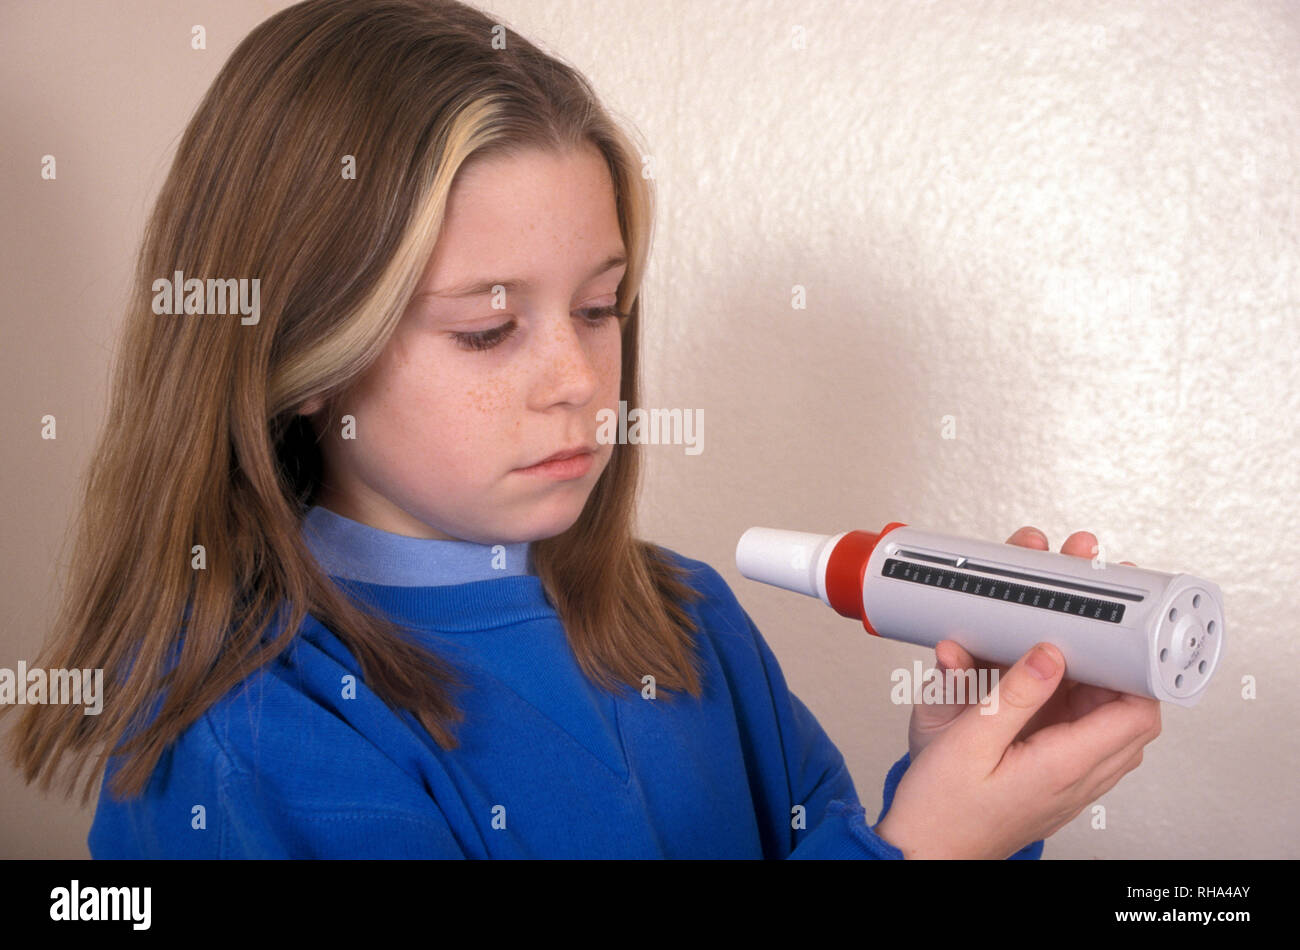 young girl taking spirometry test for asthma - Stock Image